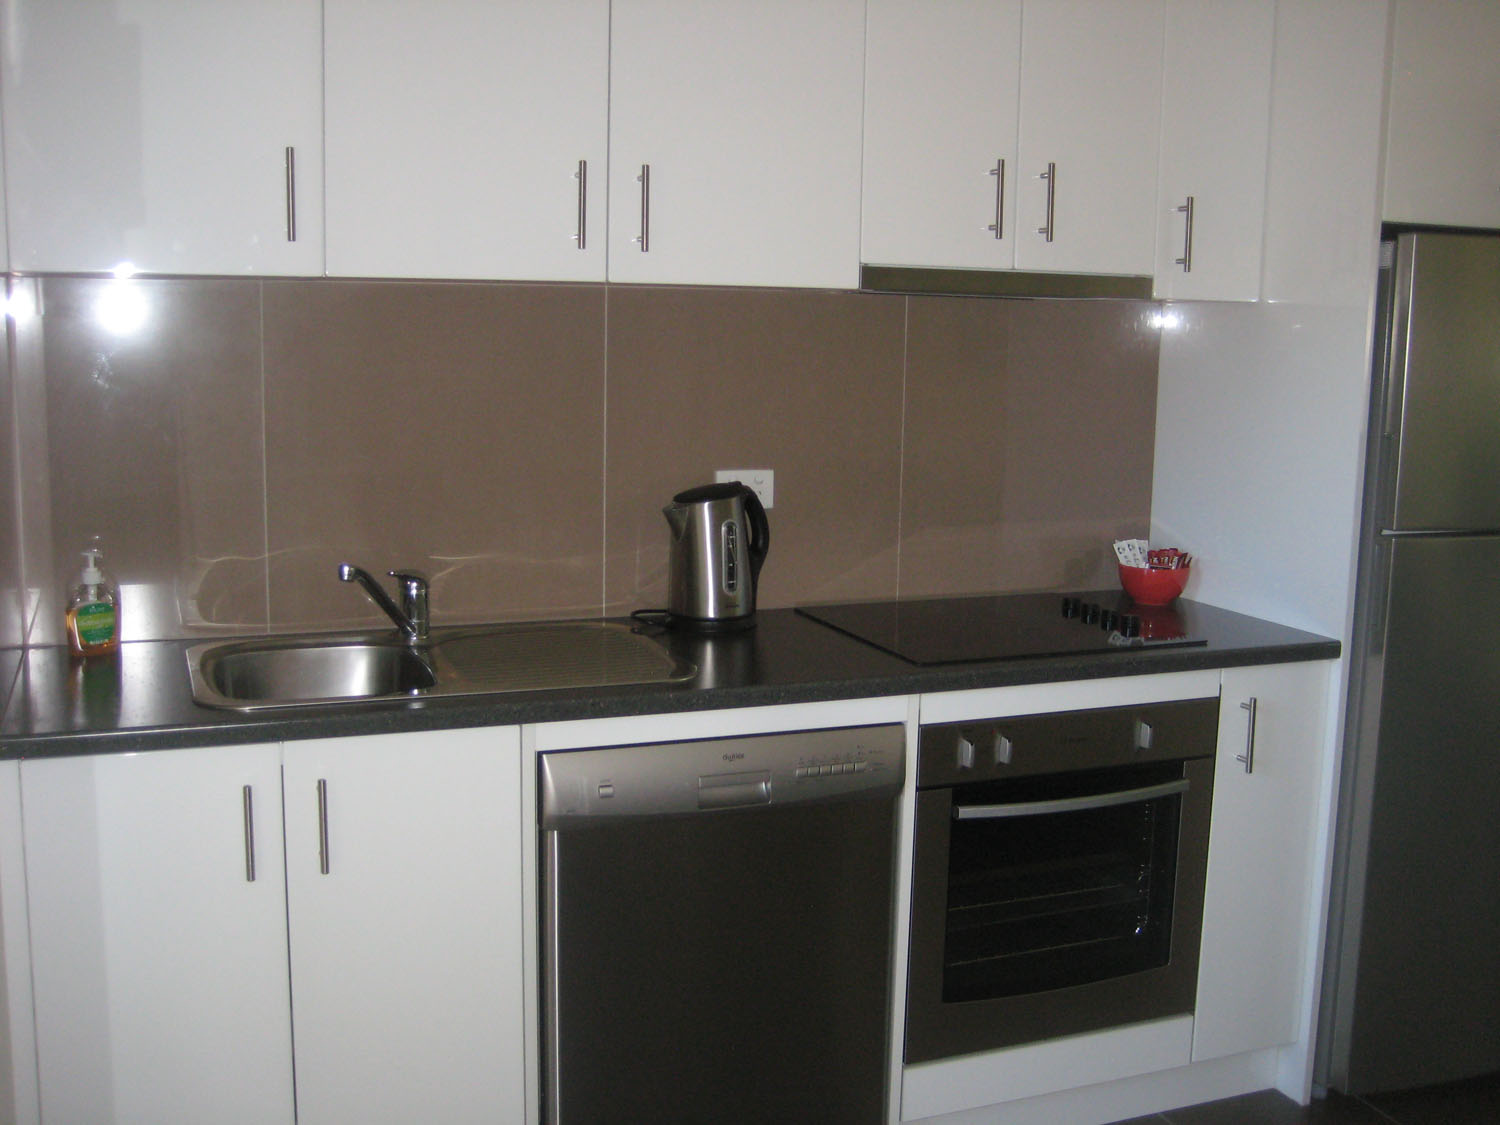 1 bedroom villa unit kitchen